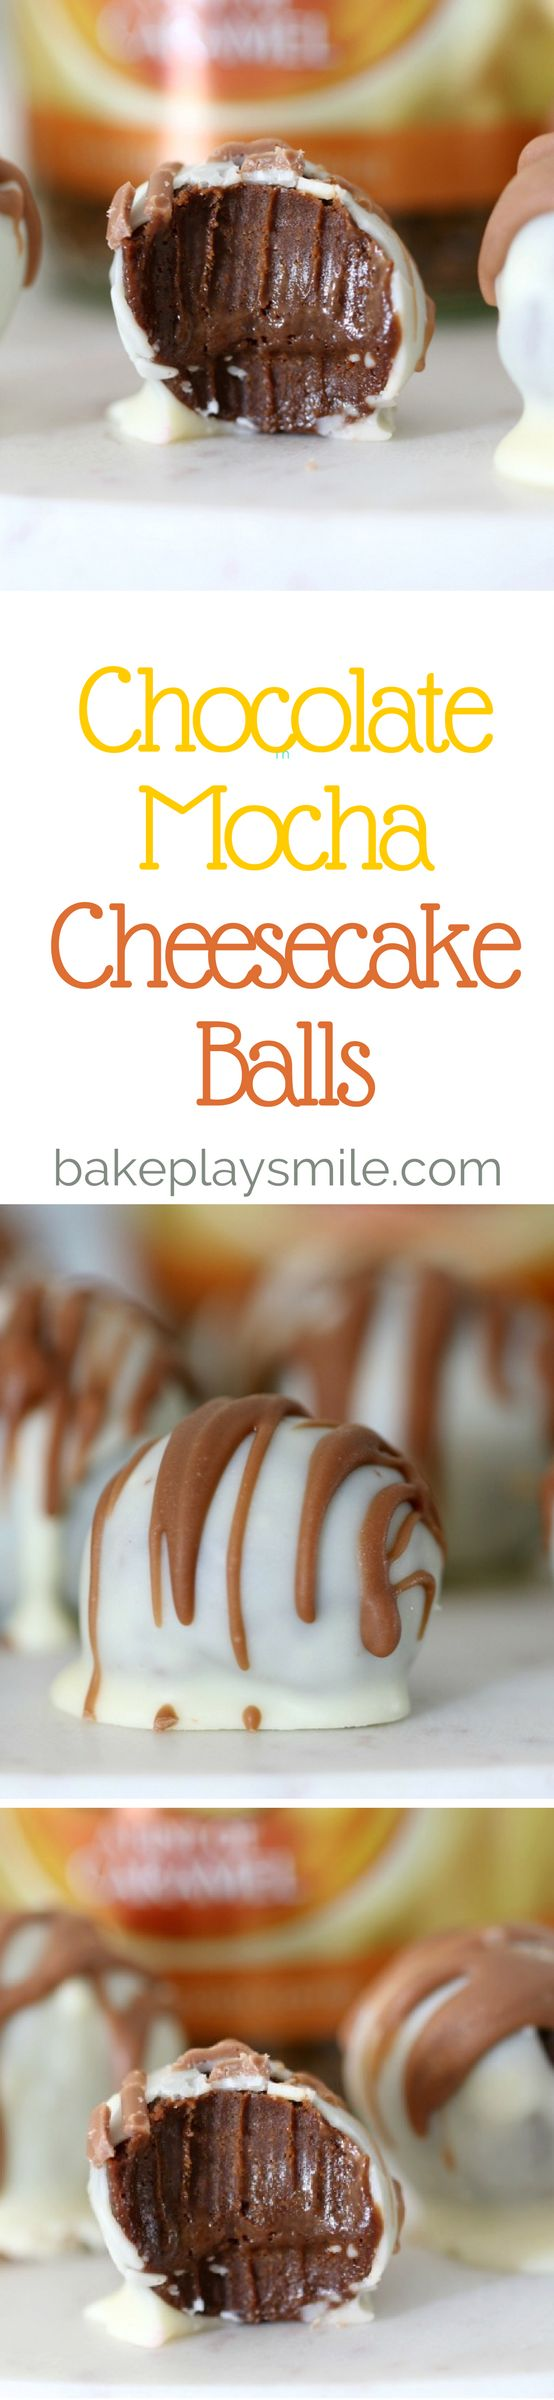 Chocolate Mocha Cheesecake Balls  These Rich Chocolate Mocha Cheesecake Balls are made from just 4 ingredients, are completely no-bake… and taste AMAZING! They're also highly, highly addictive… just sayin'! #cheesecake #balls #nobake #dessert